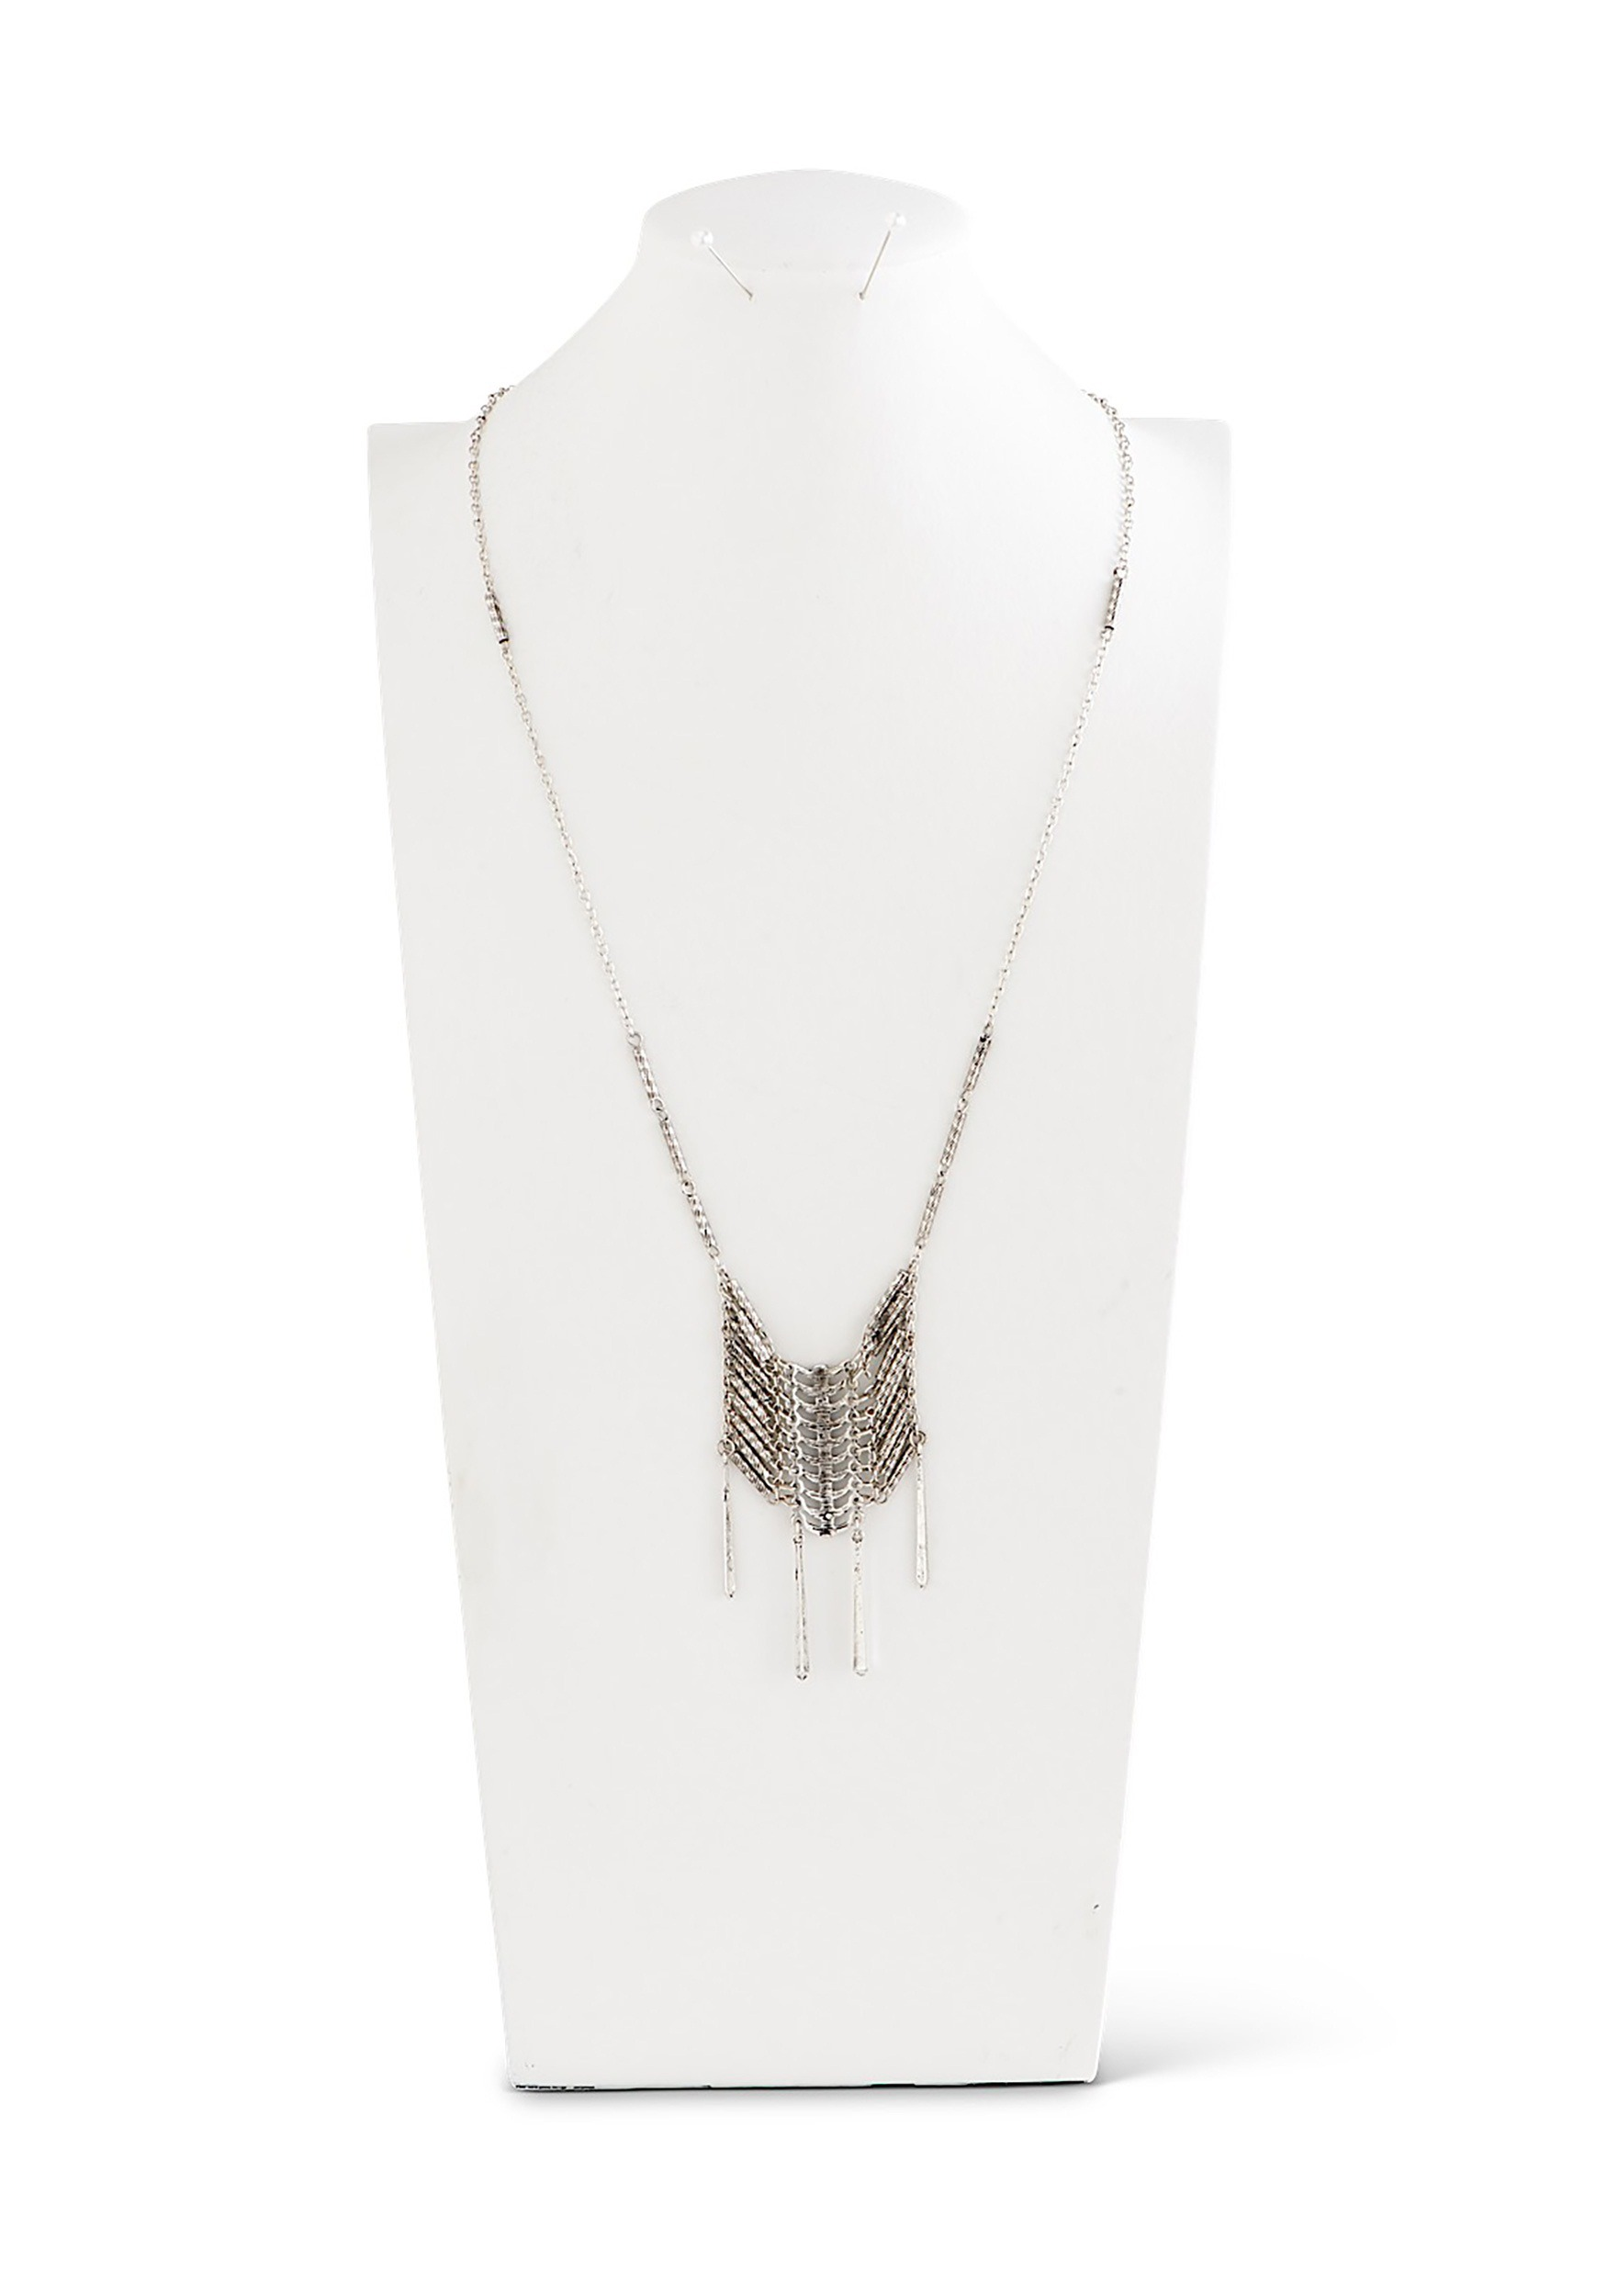 Antique Silver-Tone Aztec-Style Long Necklace